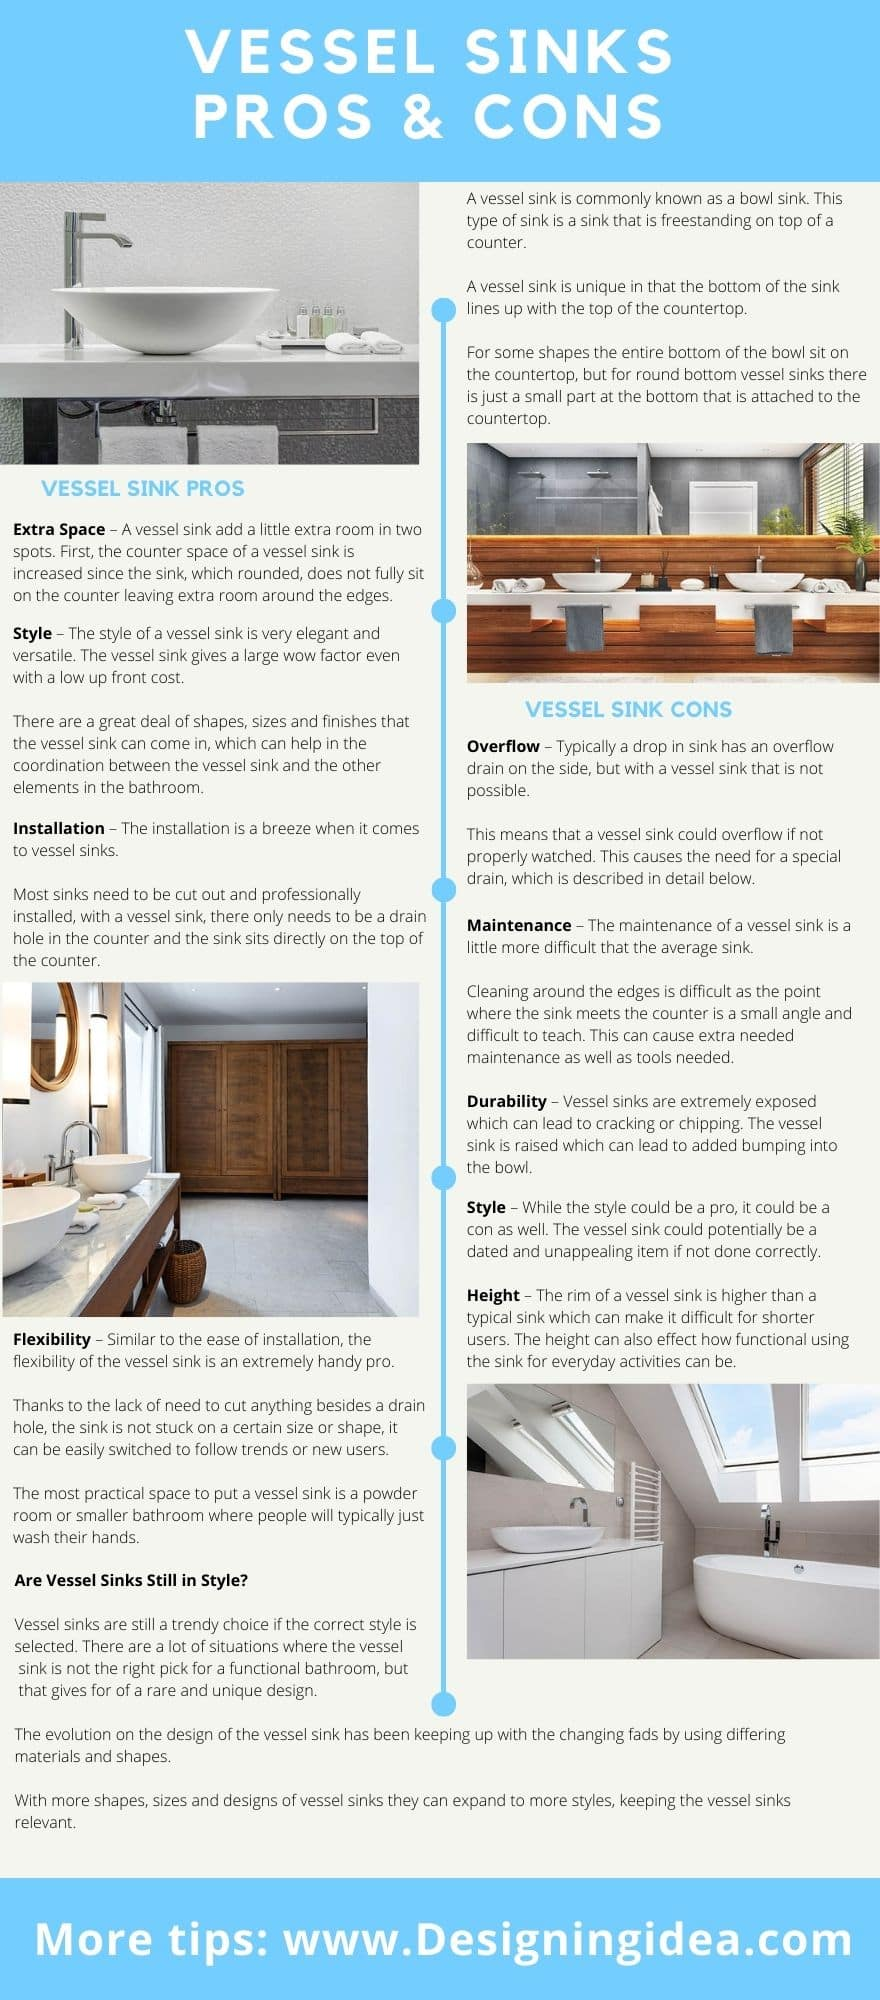 Vessel sinks pros and cons